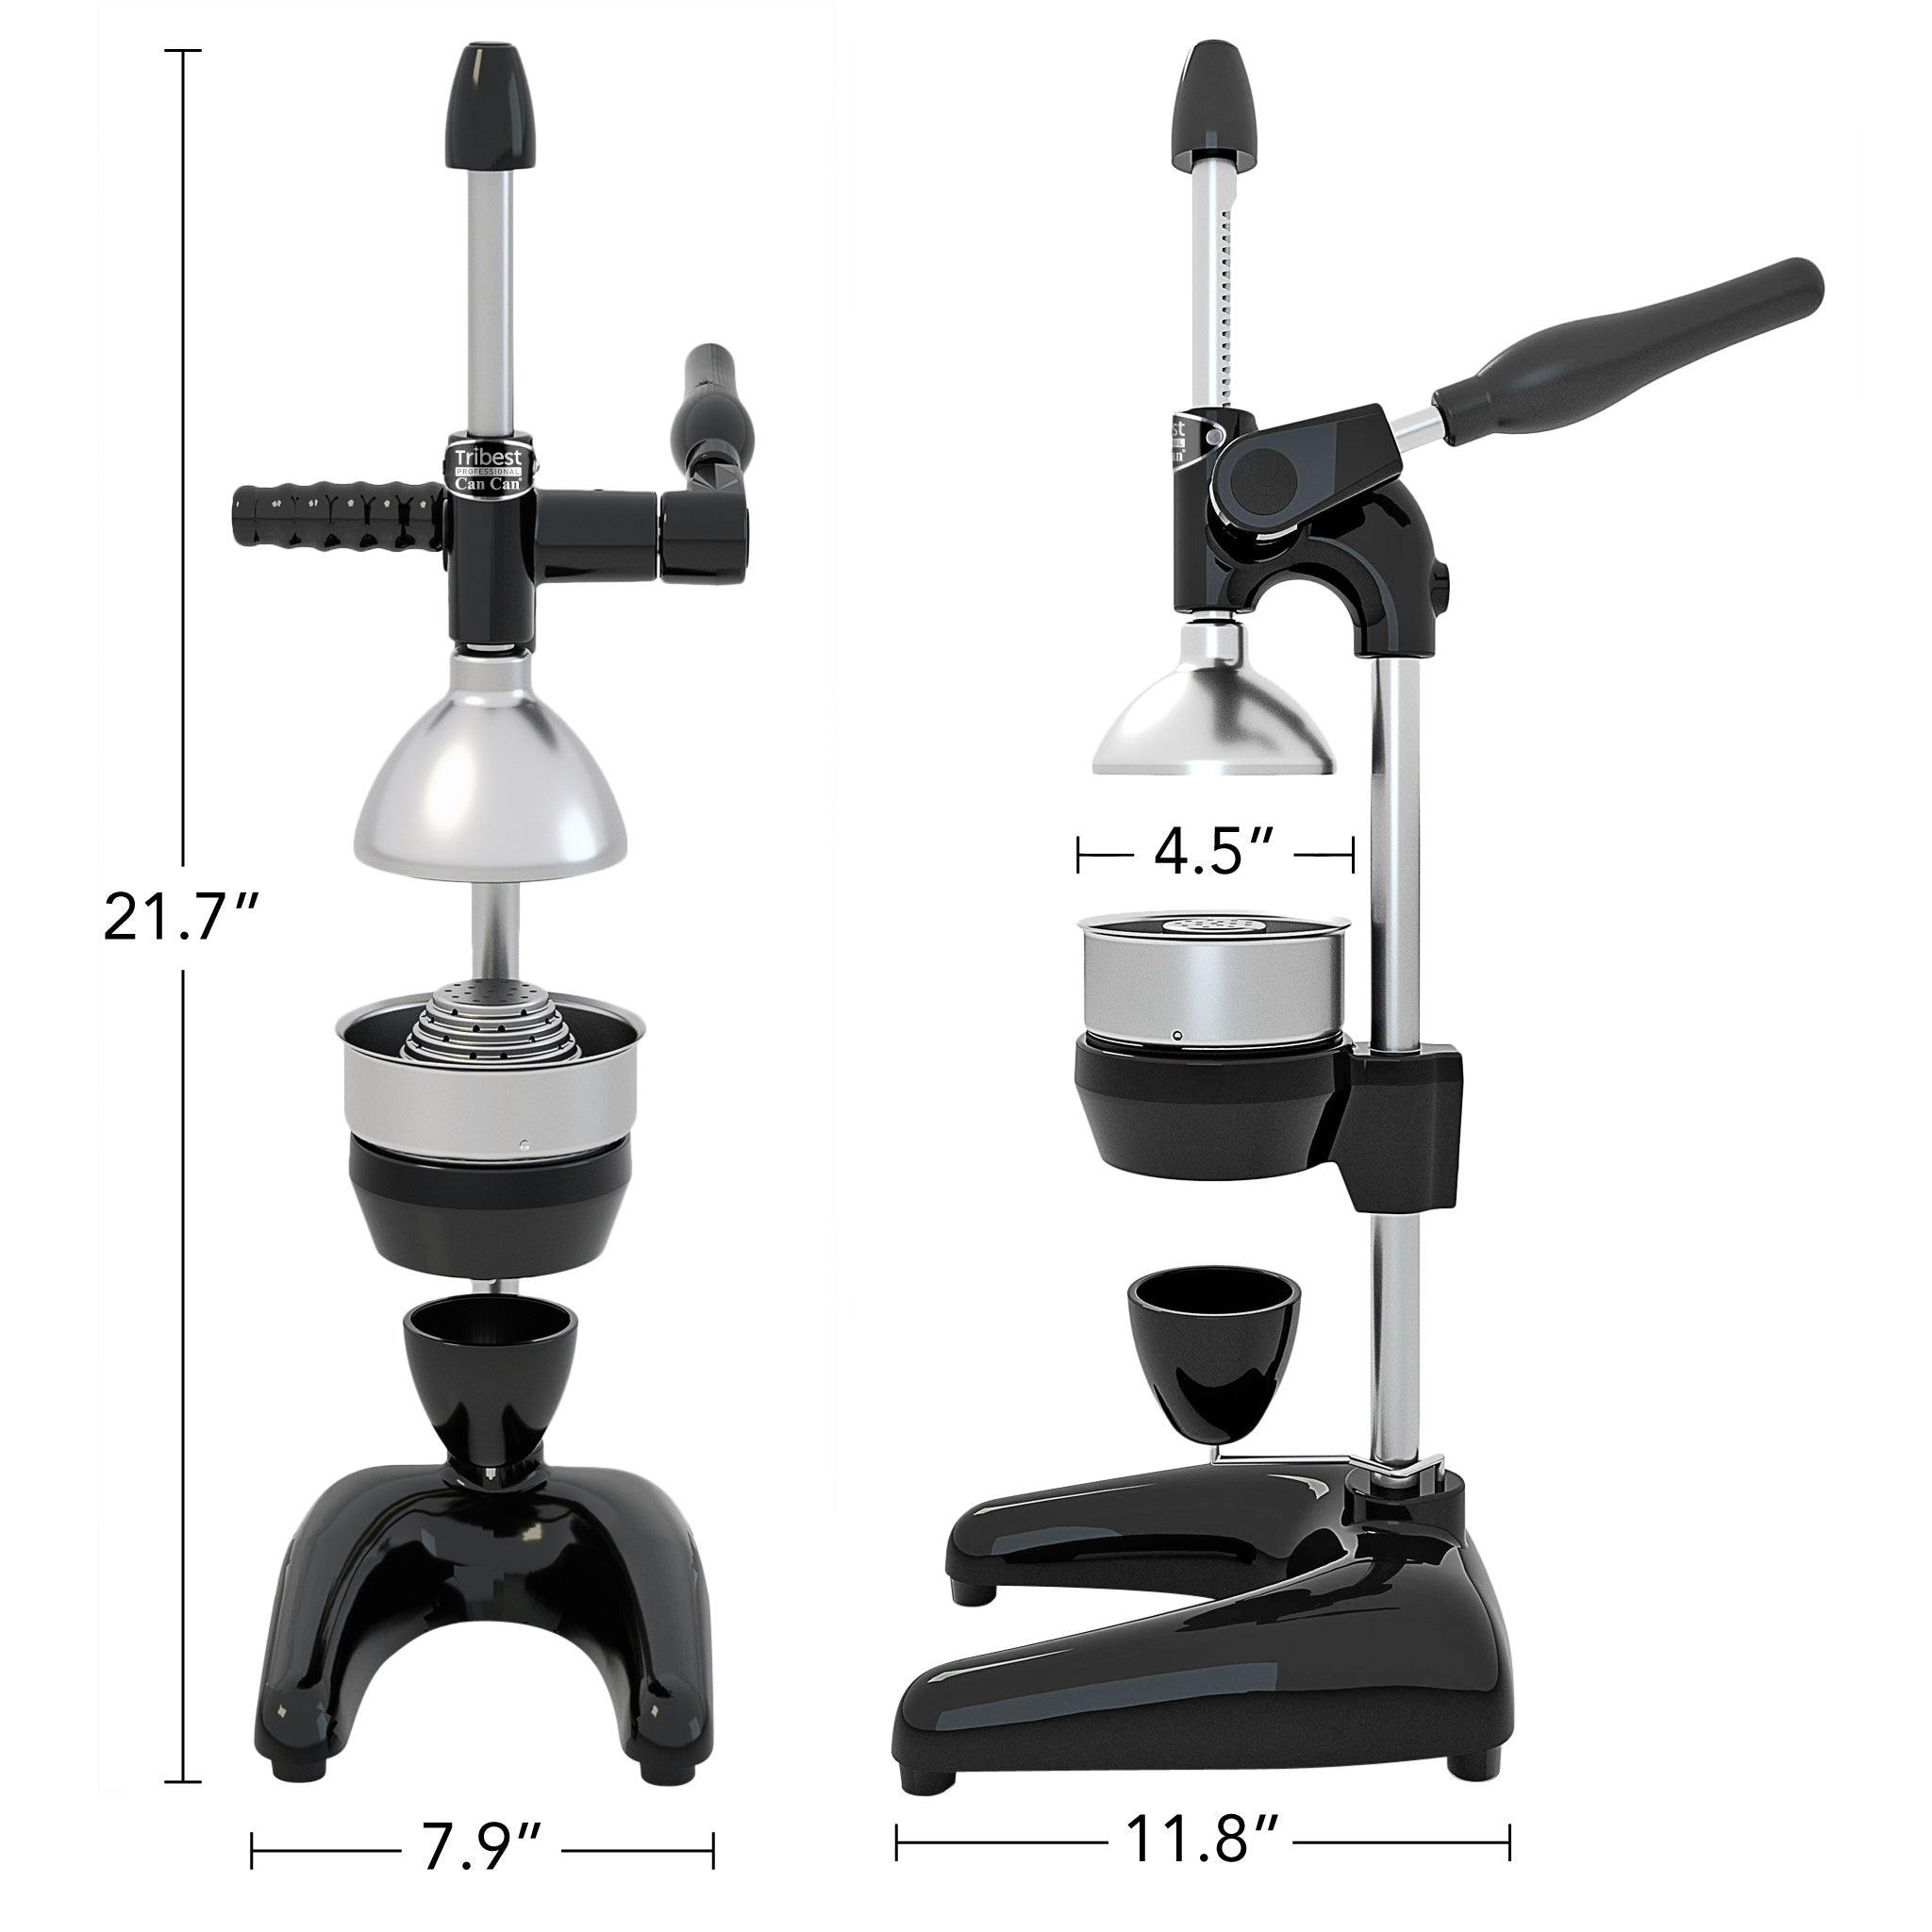 Tribest Professional Cancan Manual Pomegranate Juice Press MJP-105 in Black. 21.7